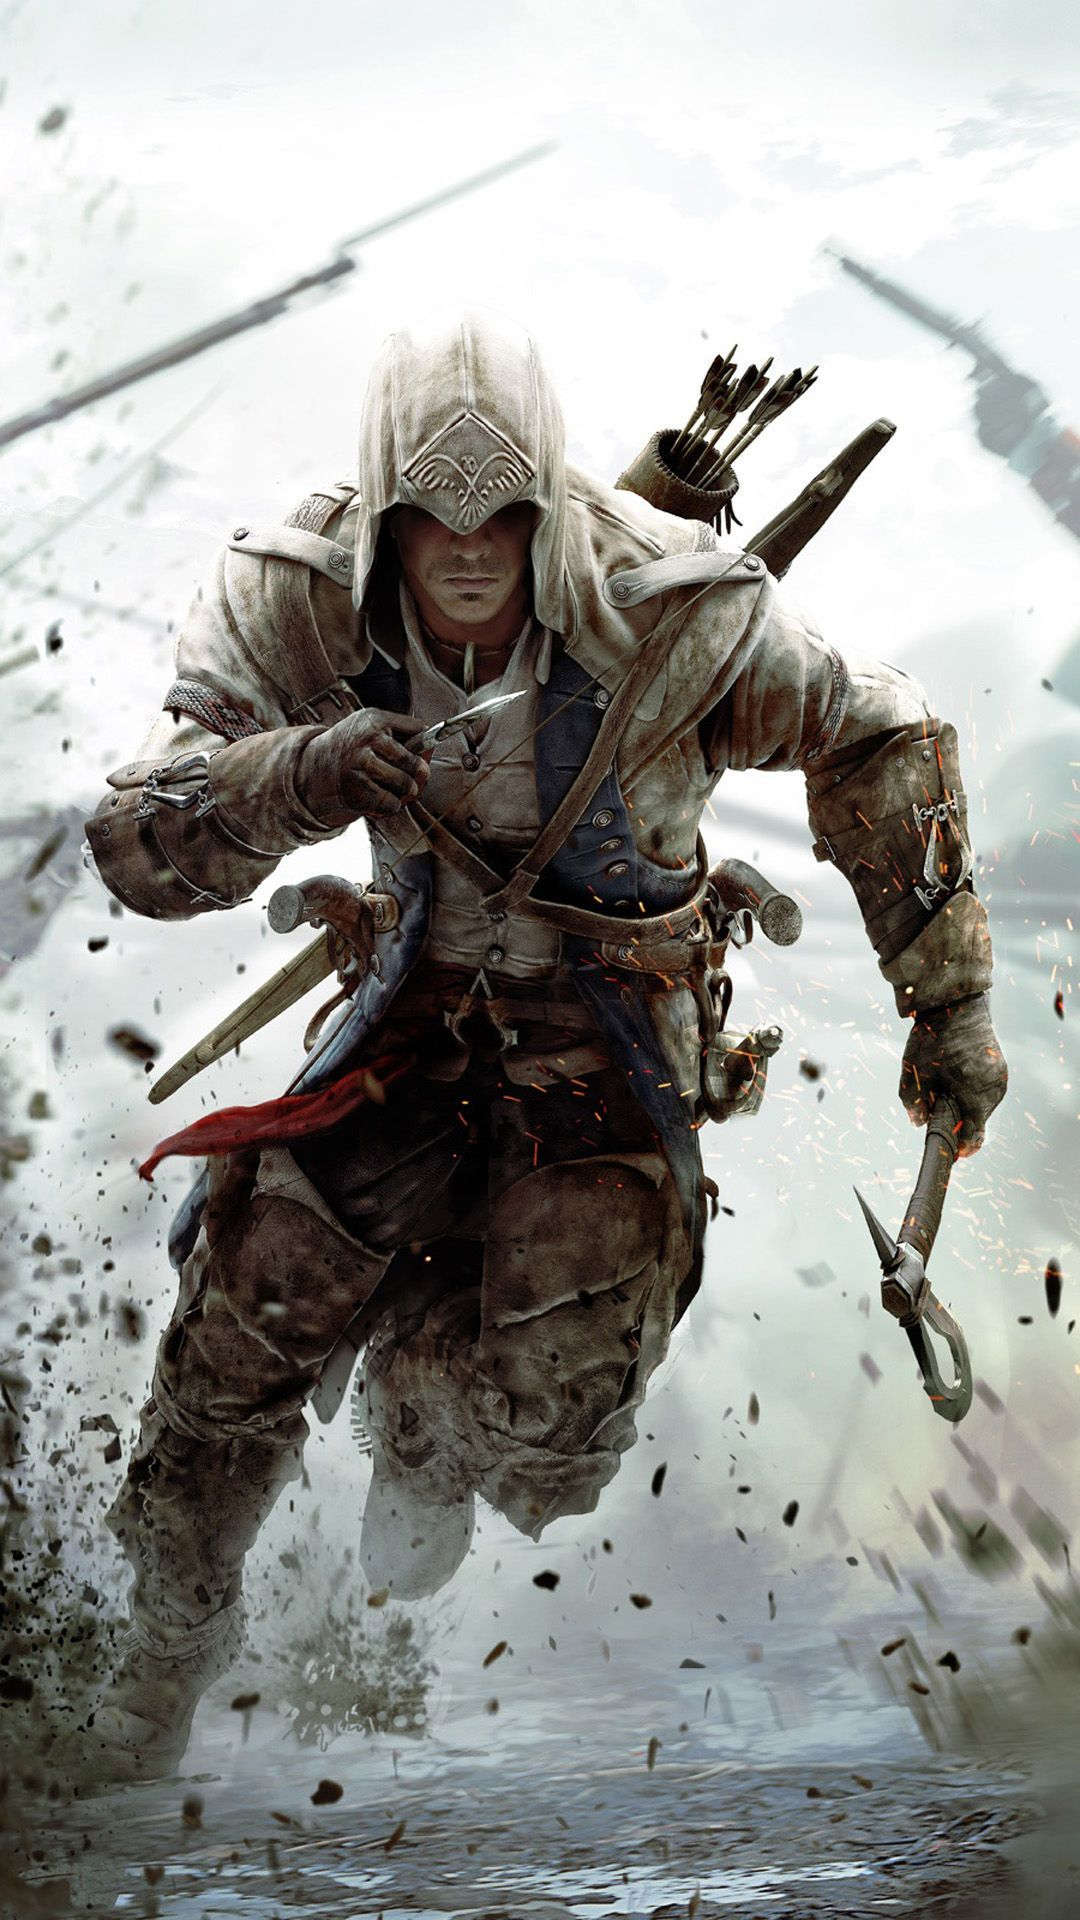 Soldier Assassins Creed Game HD Samsung Galaxy S4 Wallpaper